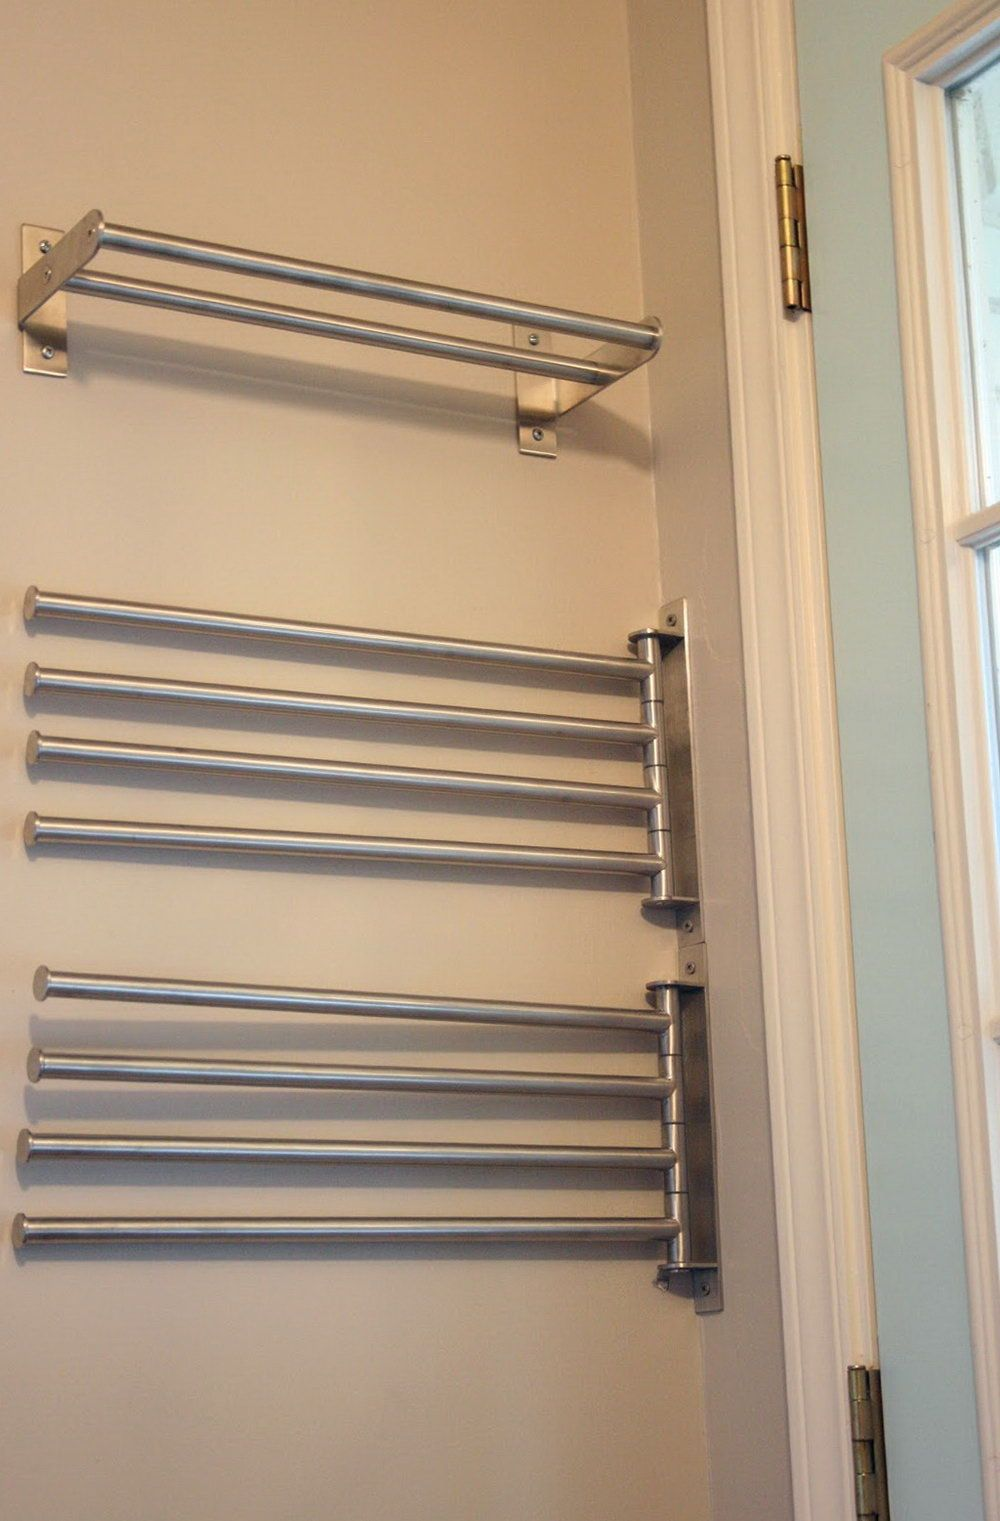 Laundry Room Hanging Drying Racks Perfect Laundry Room Laundry